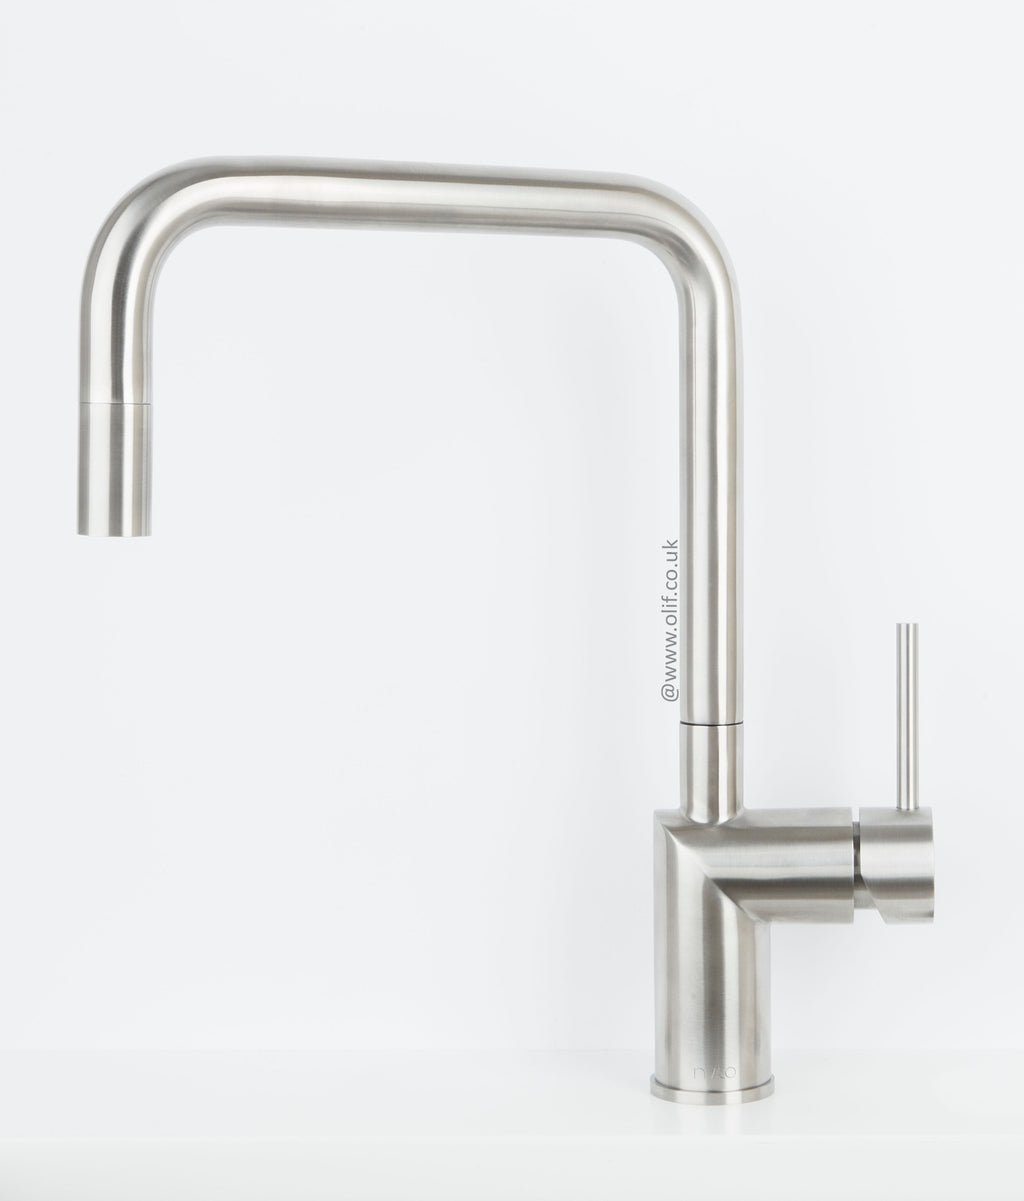 Nivito RH-300 Brushed Steel, kitchen mixer tap